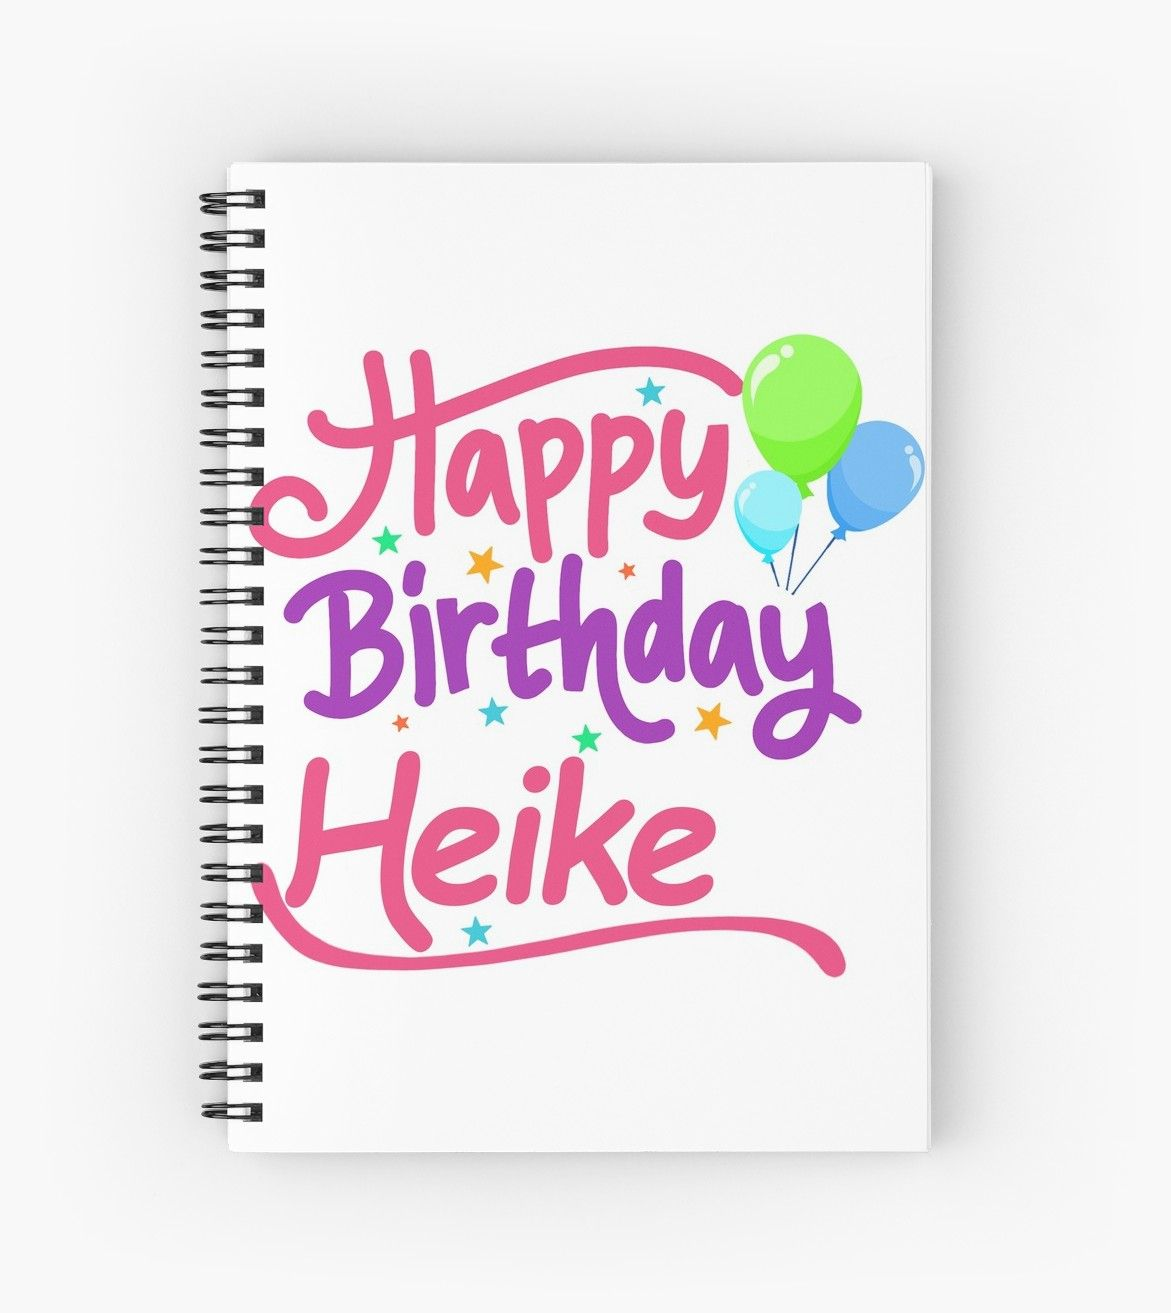 This Design The Inscription Happy Birthday For The Name Heike Ideal For Women And Girls Or Ch Letters For Kids Birthday Surprise For Girlfriend Happy Birthday